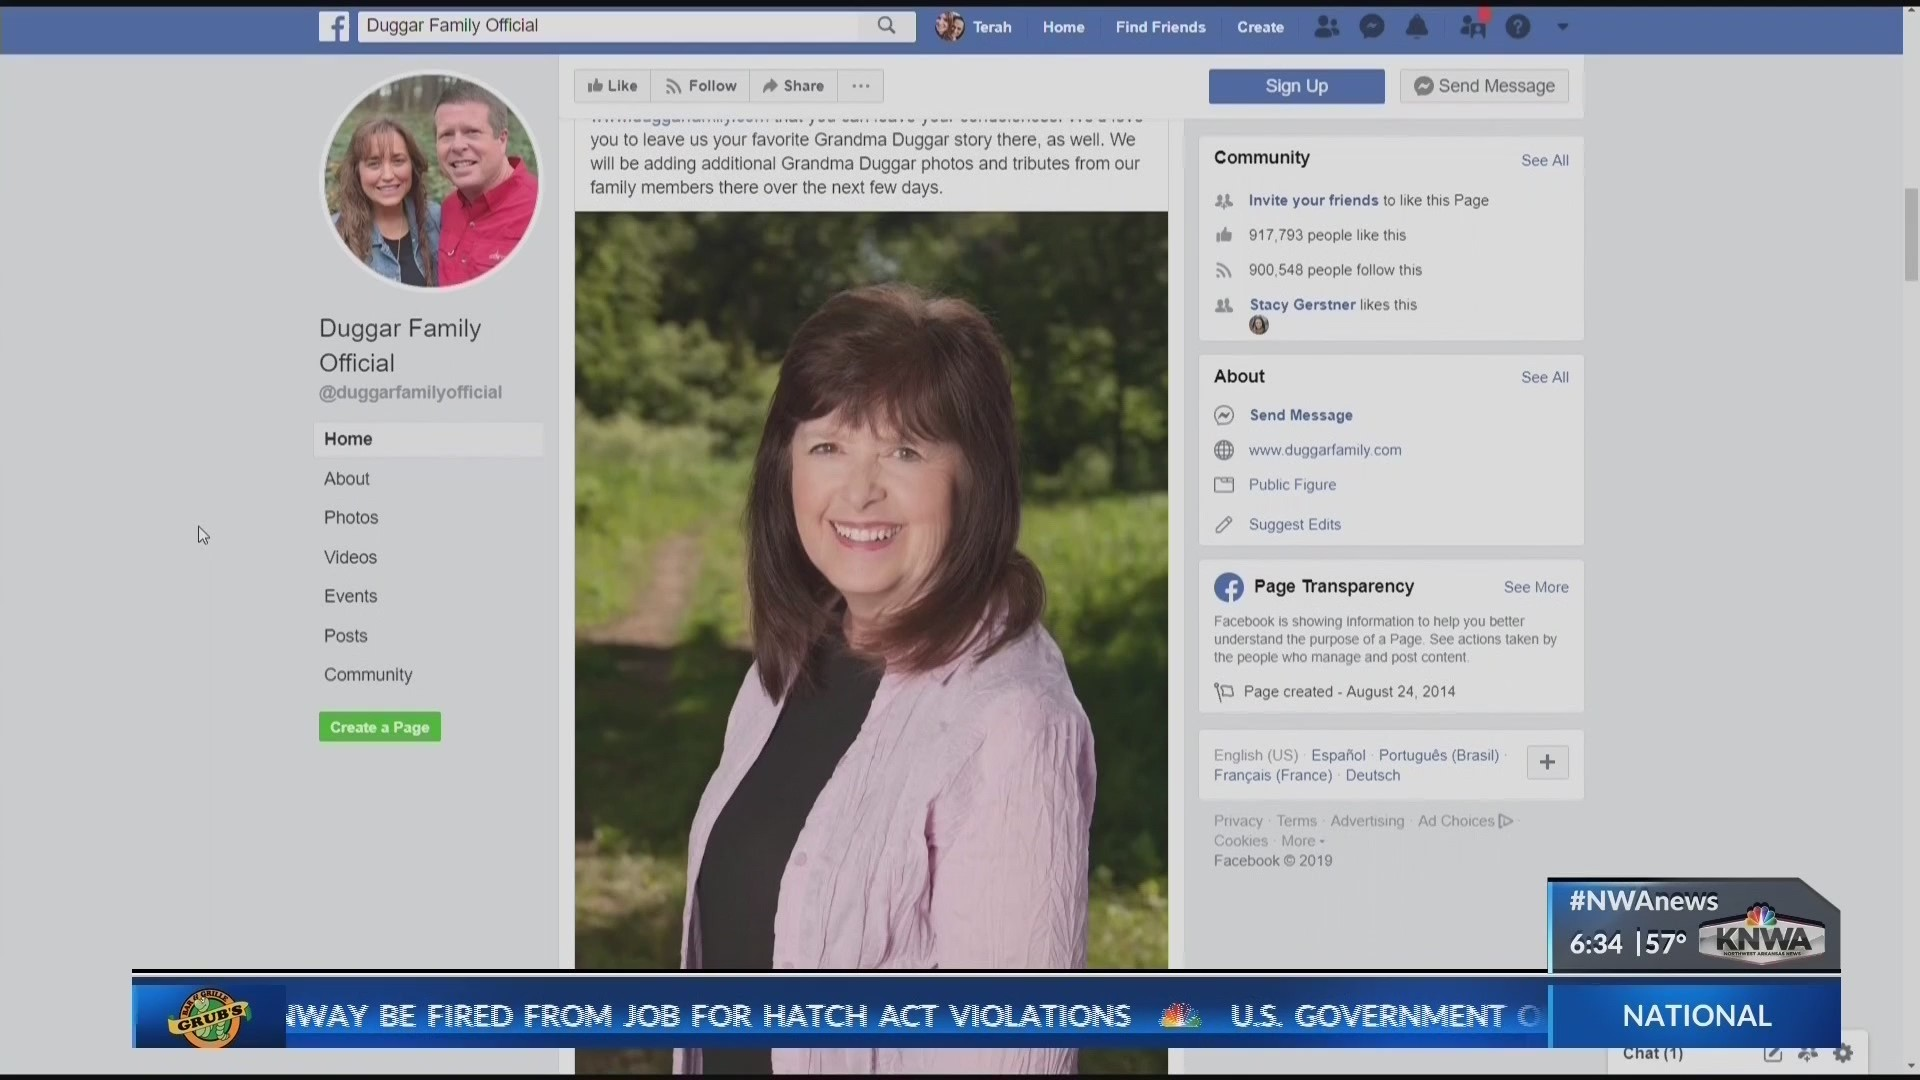 Grandma Duggar dies of accidental drowning (KNWA)